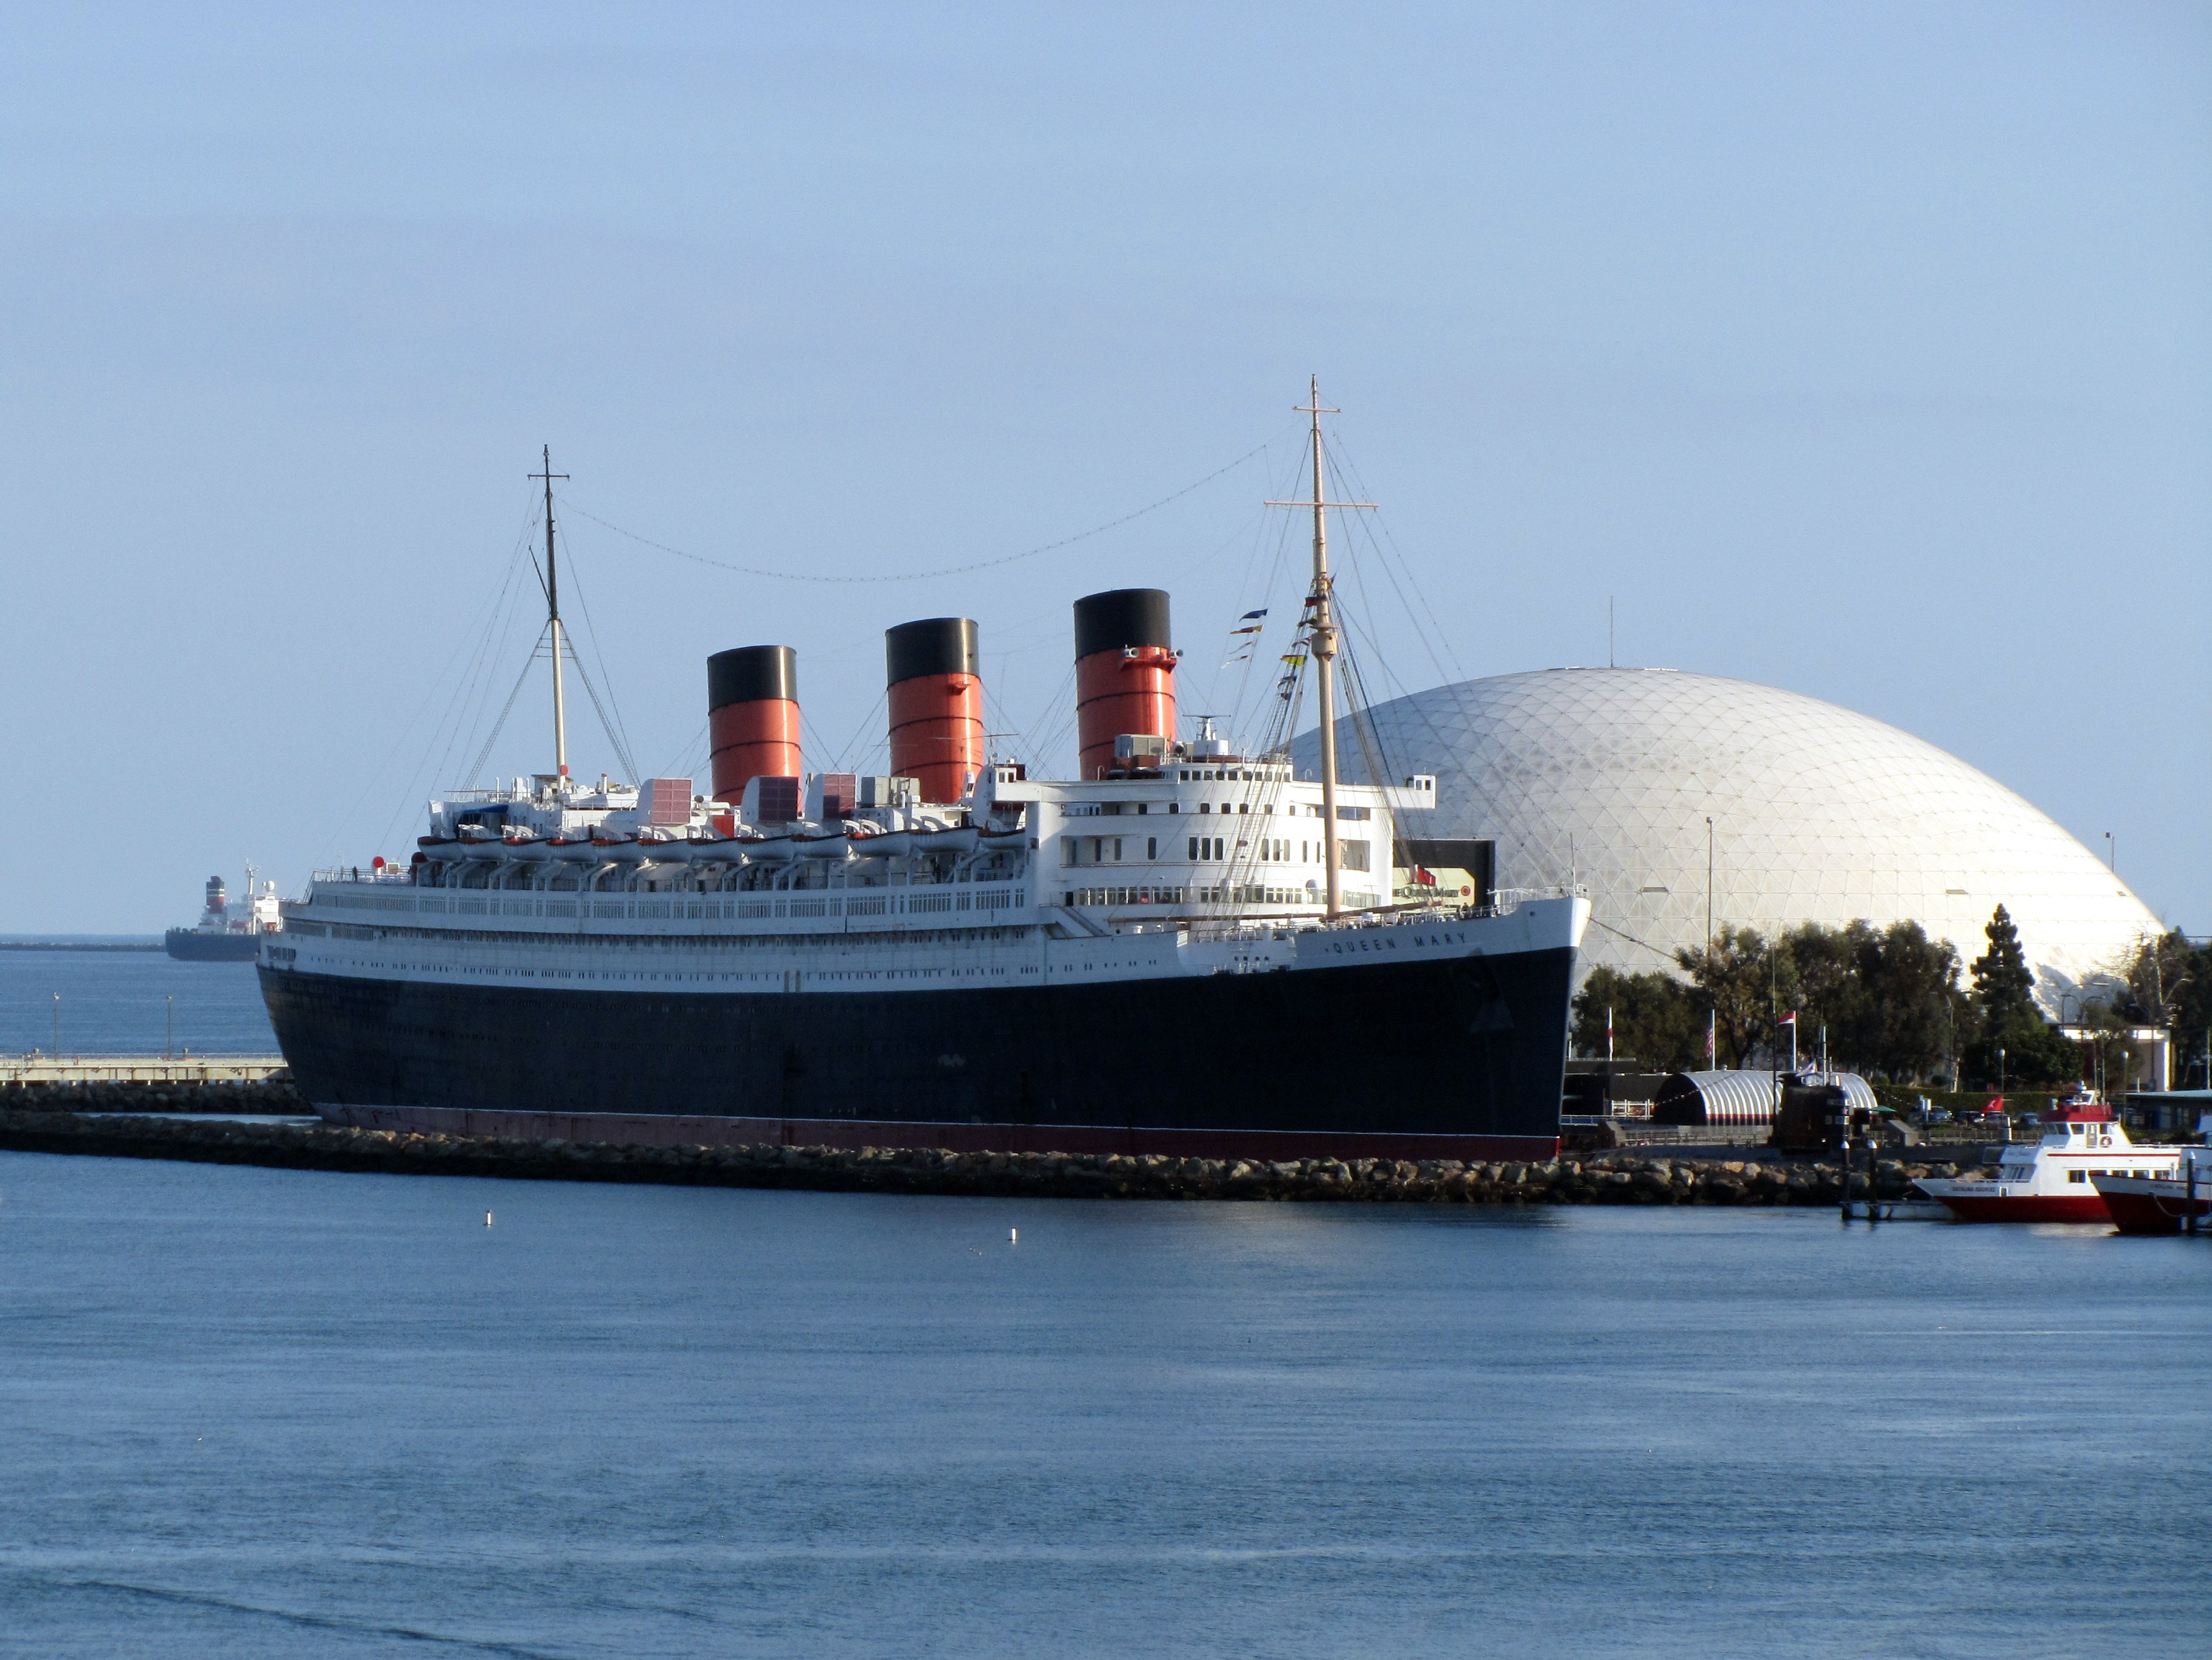 Long Beach Harbor with the Queen Mary. Photo courtesy of LAweekly.com.